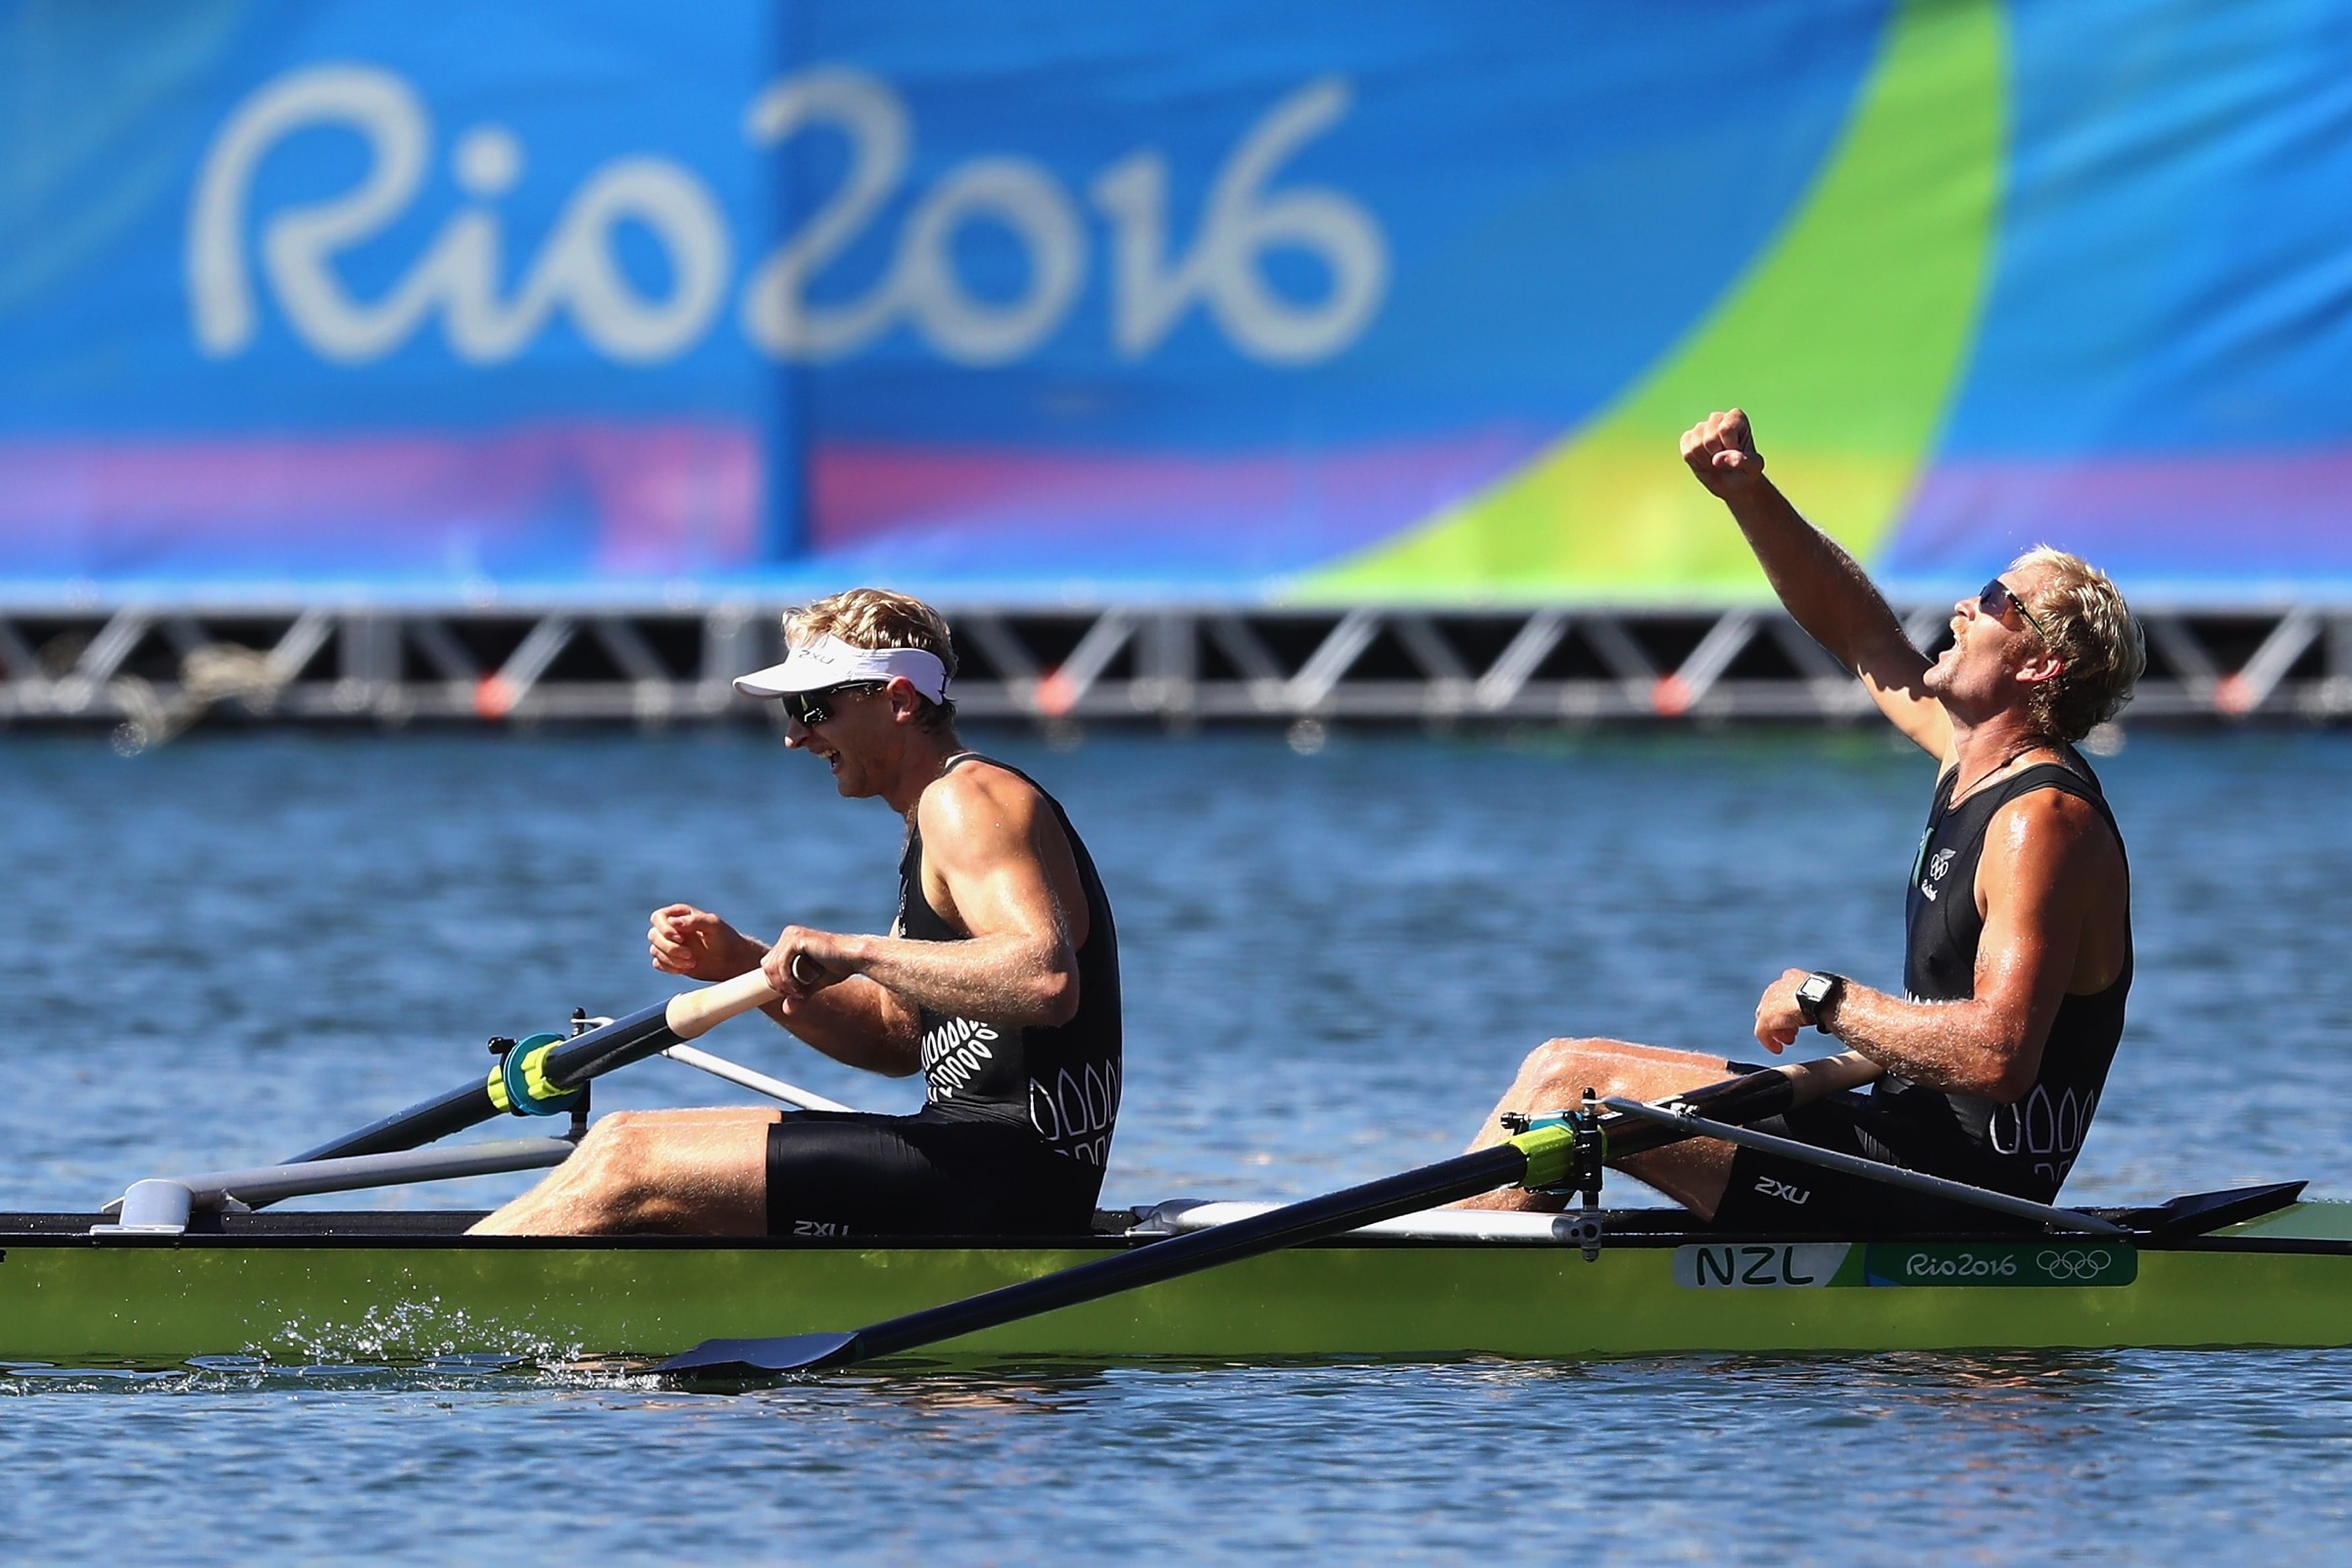 Rowing - Men's Pair